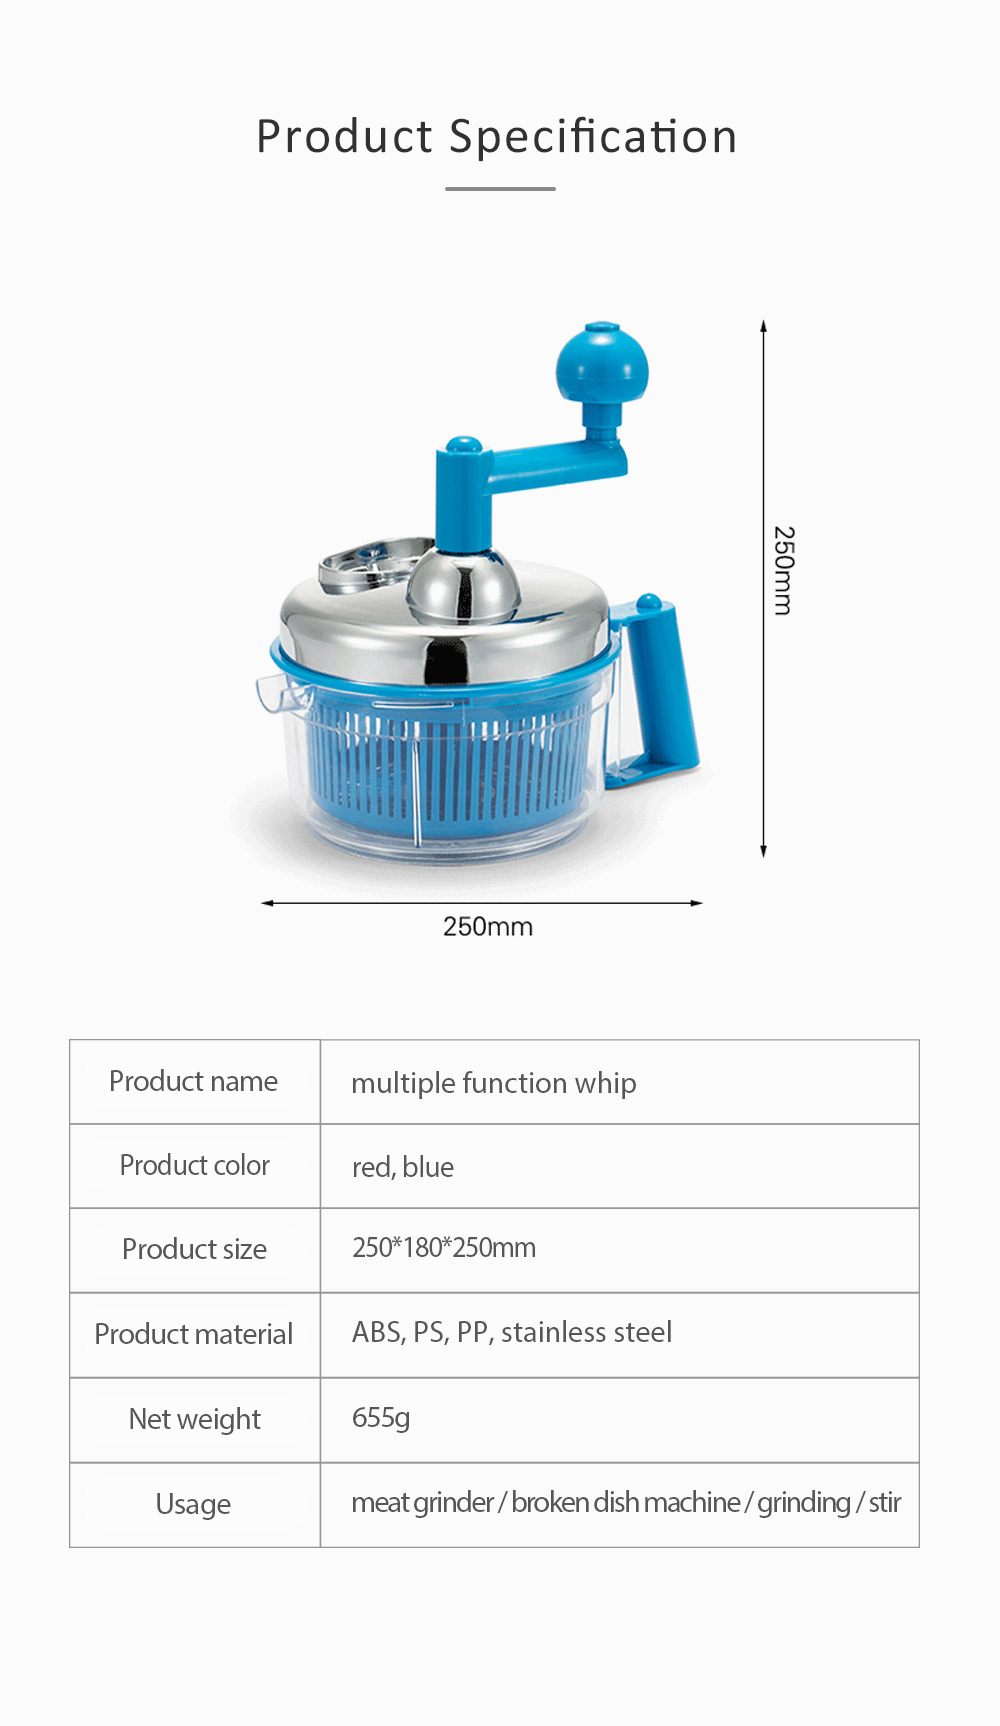 Meat Grinder Stainless Steel ABS Material Practical Slicer for Foods Cutter Multifunctional Mangler 6